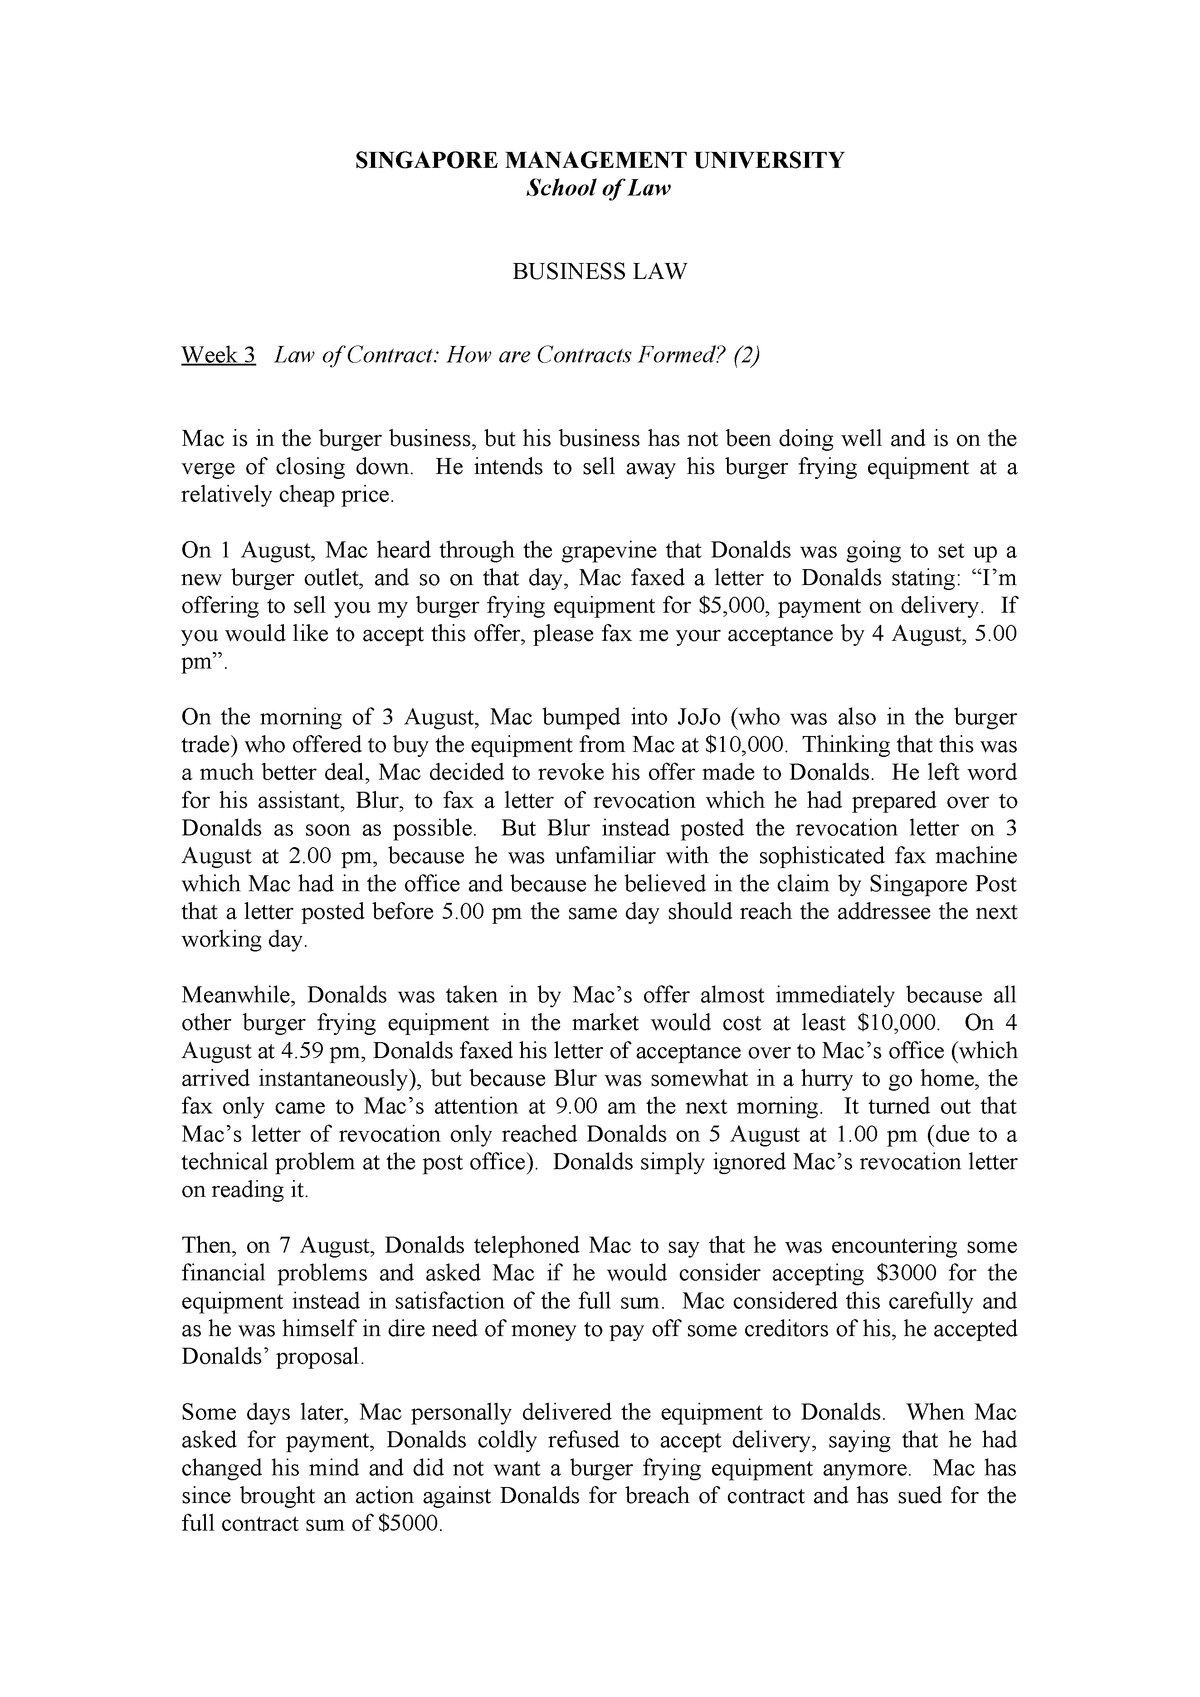 Week 3 Seminar Questions Answers - LGST101: Business Law